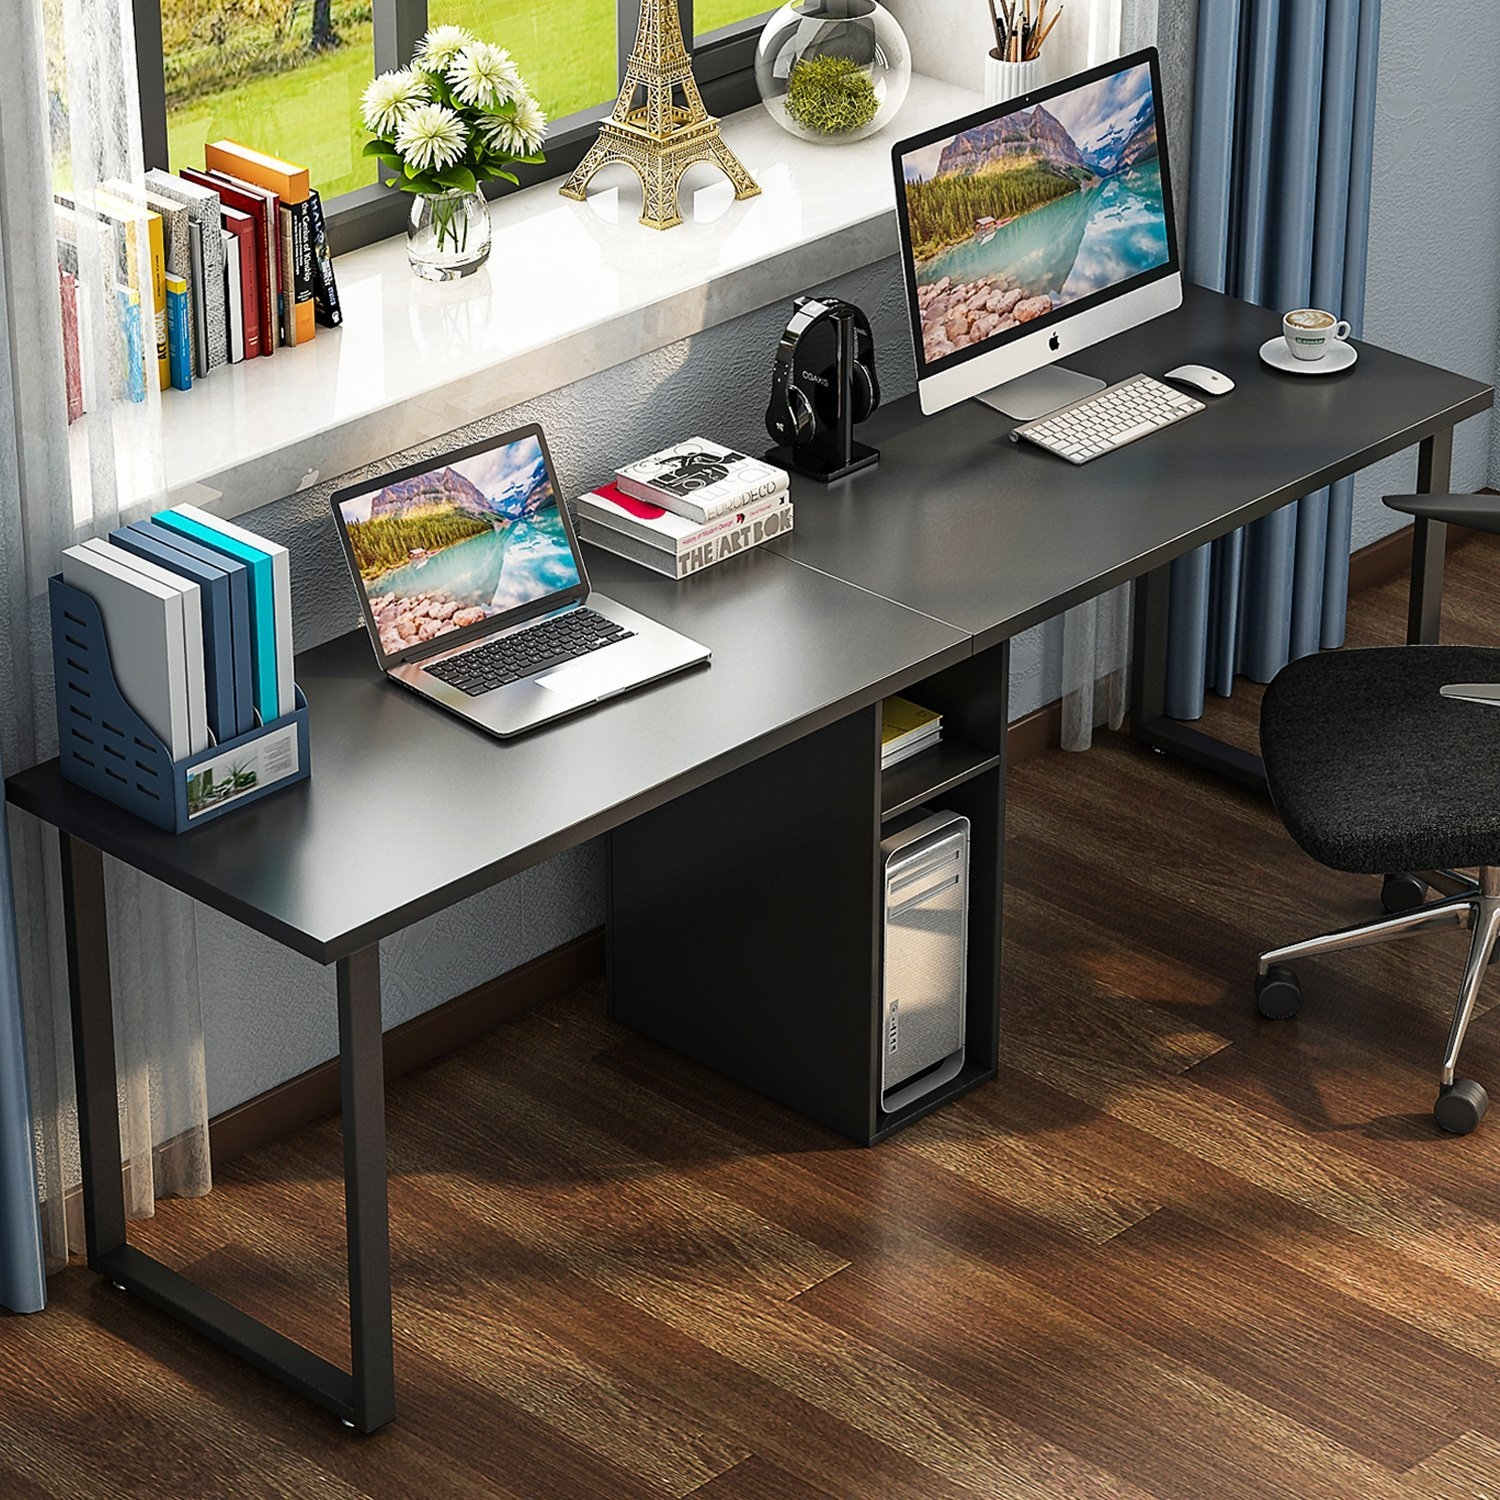 Home Office Computer Desk Modern Executive Study Table with Shelves Cabinet